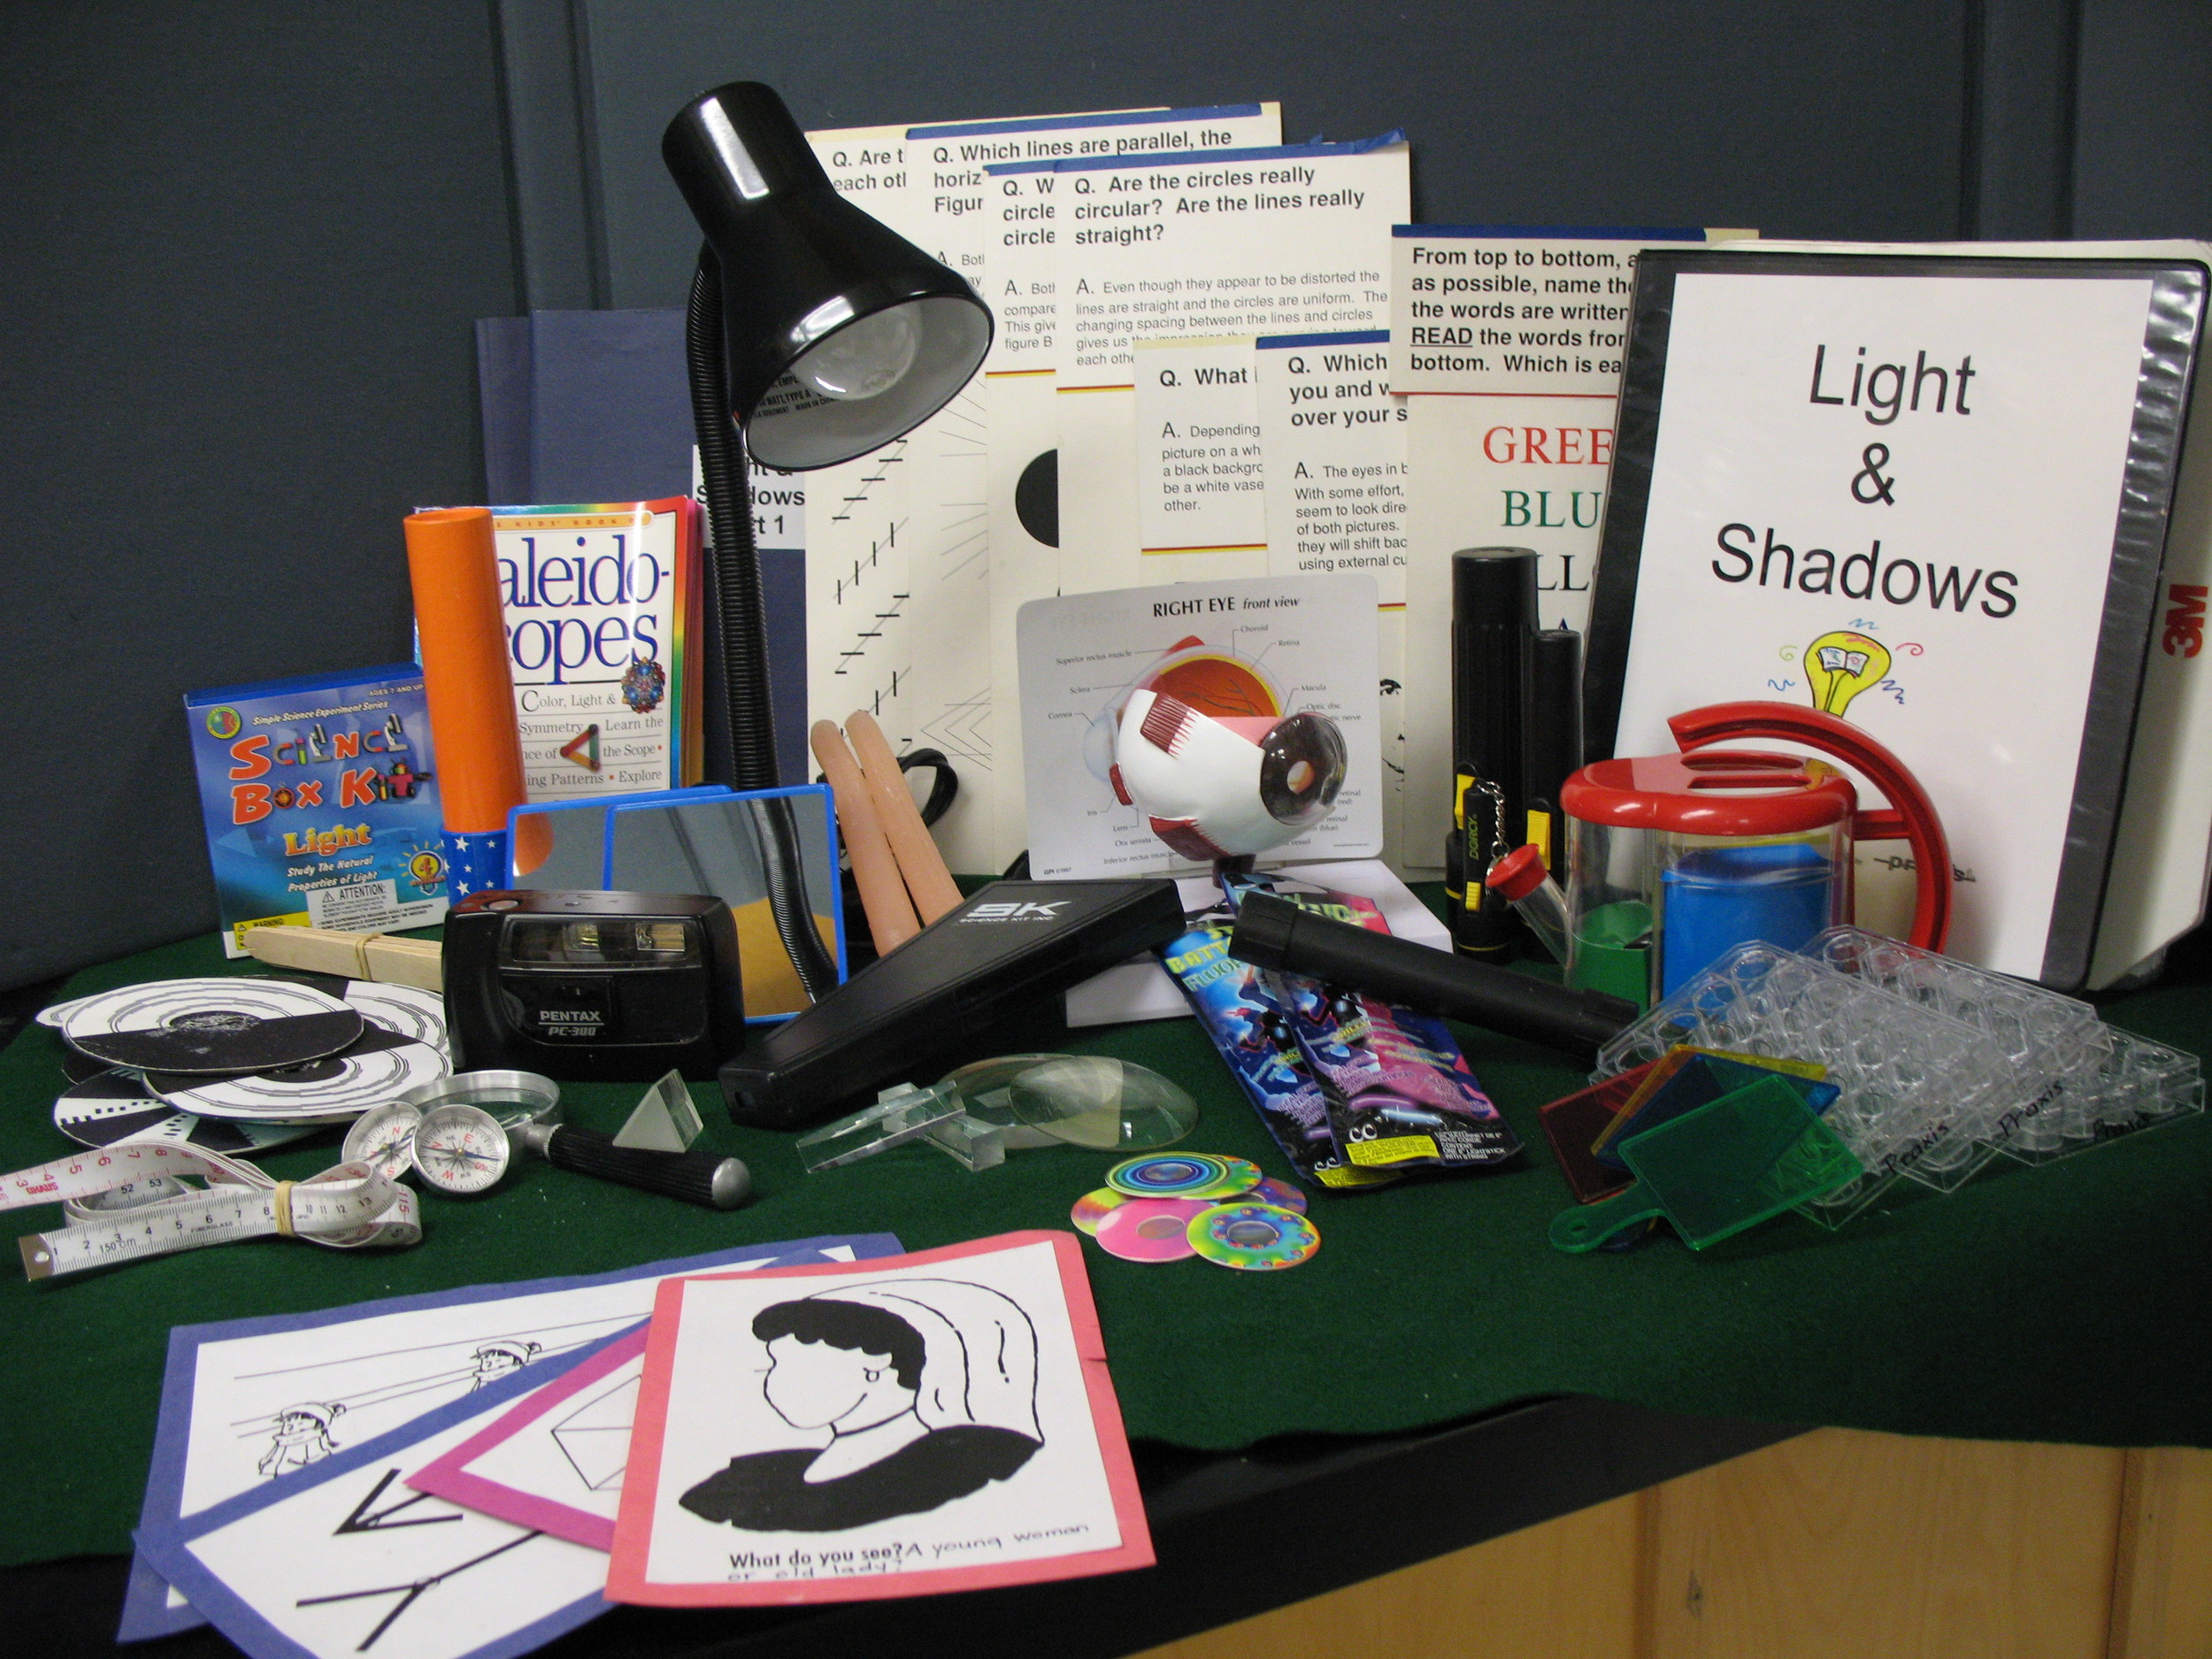 Light and Shadows kit contents